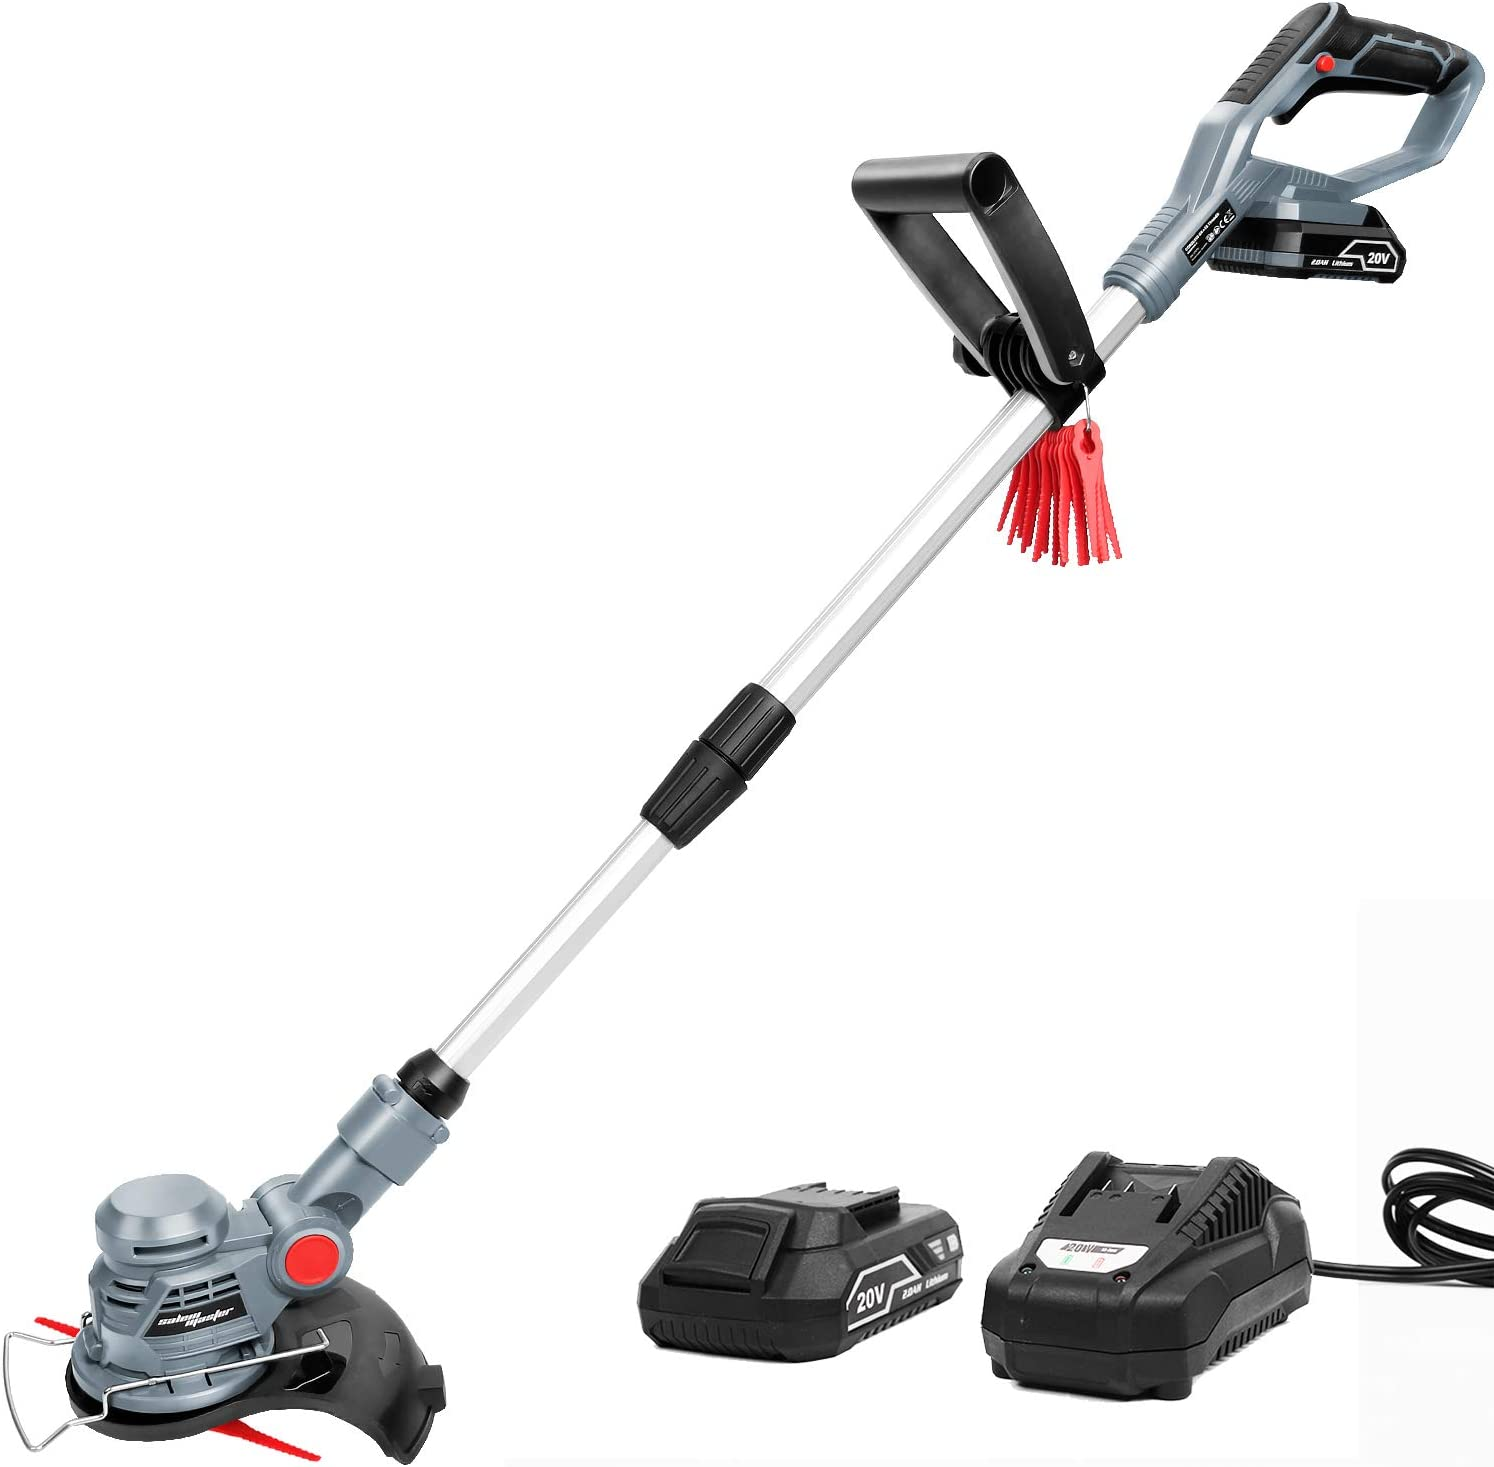 SALEM MASTER Cordless Stringless Trimmer with Blade Weed Eater Powered with Lithium-Ion Battery and Charger